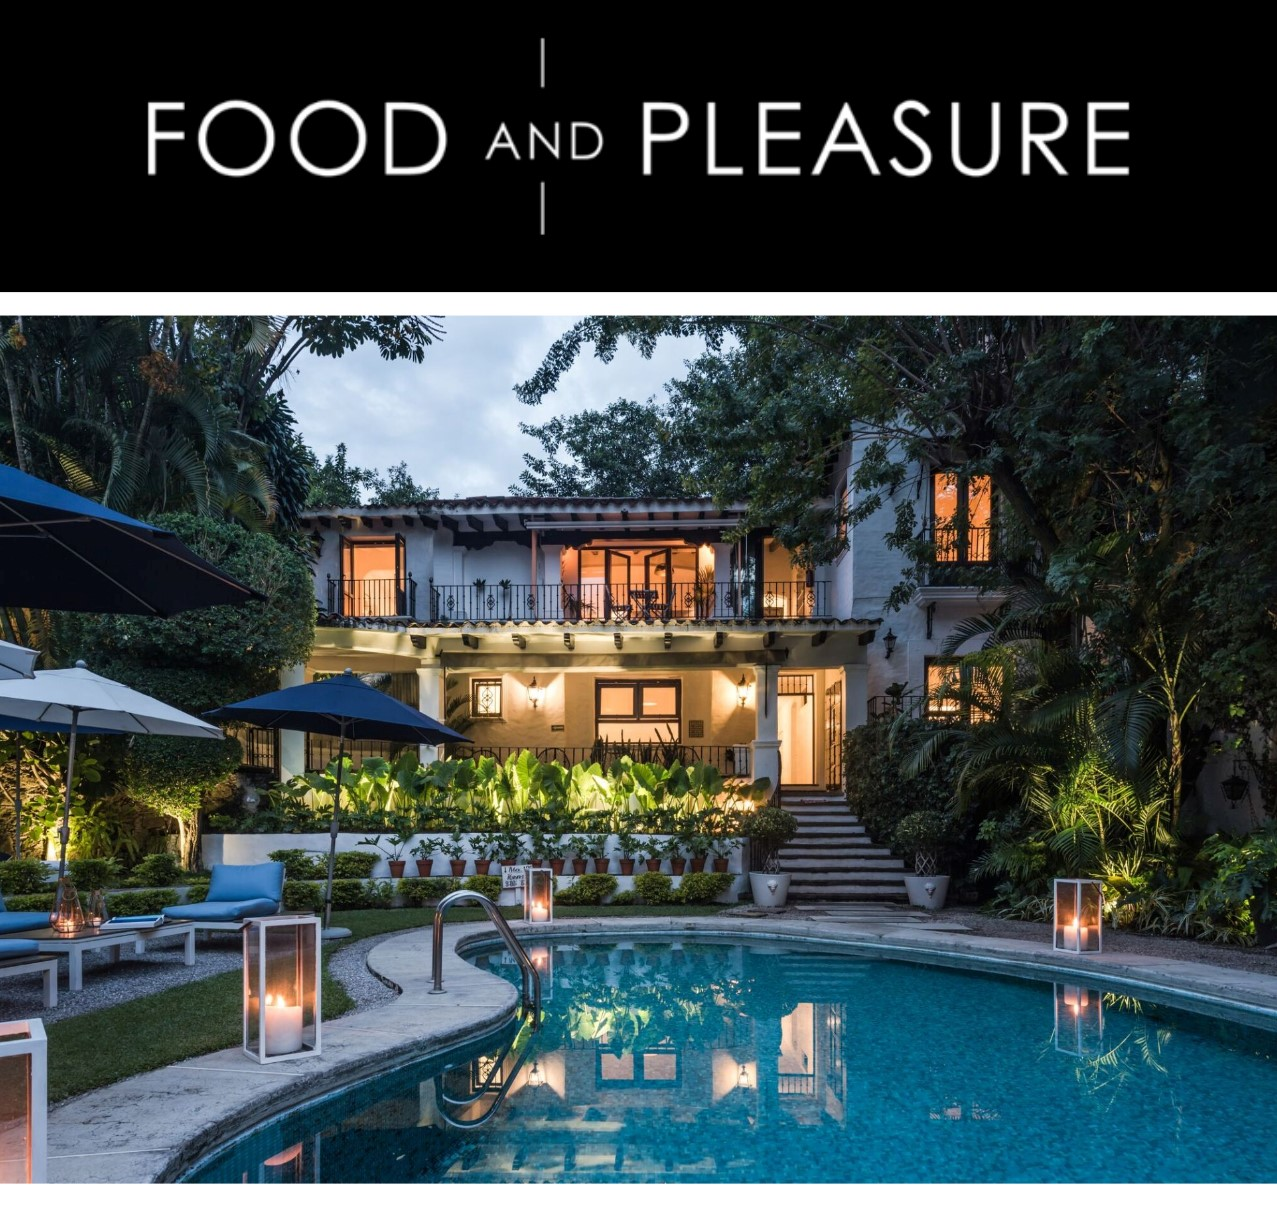 Featured on Food & Pleasure